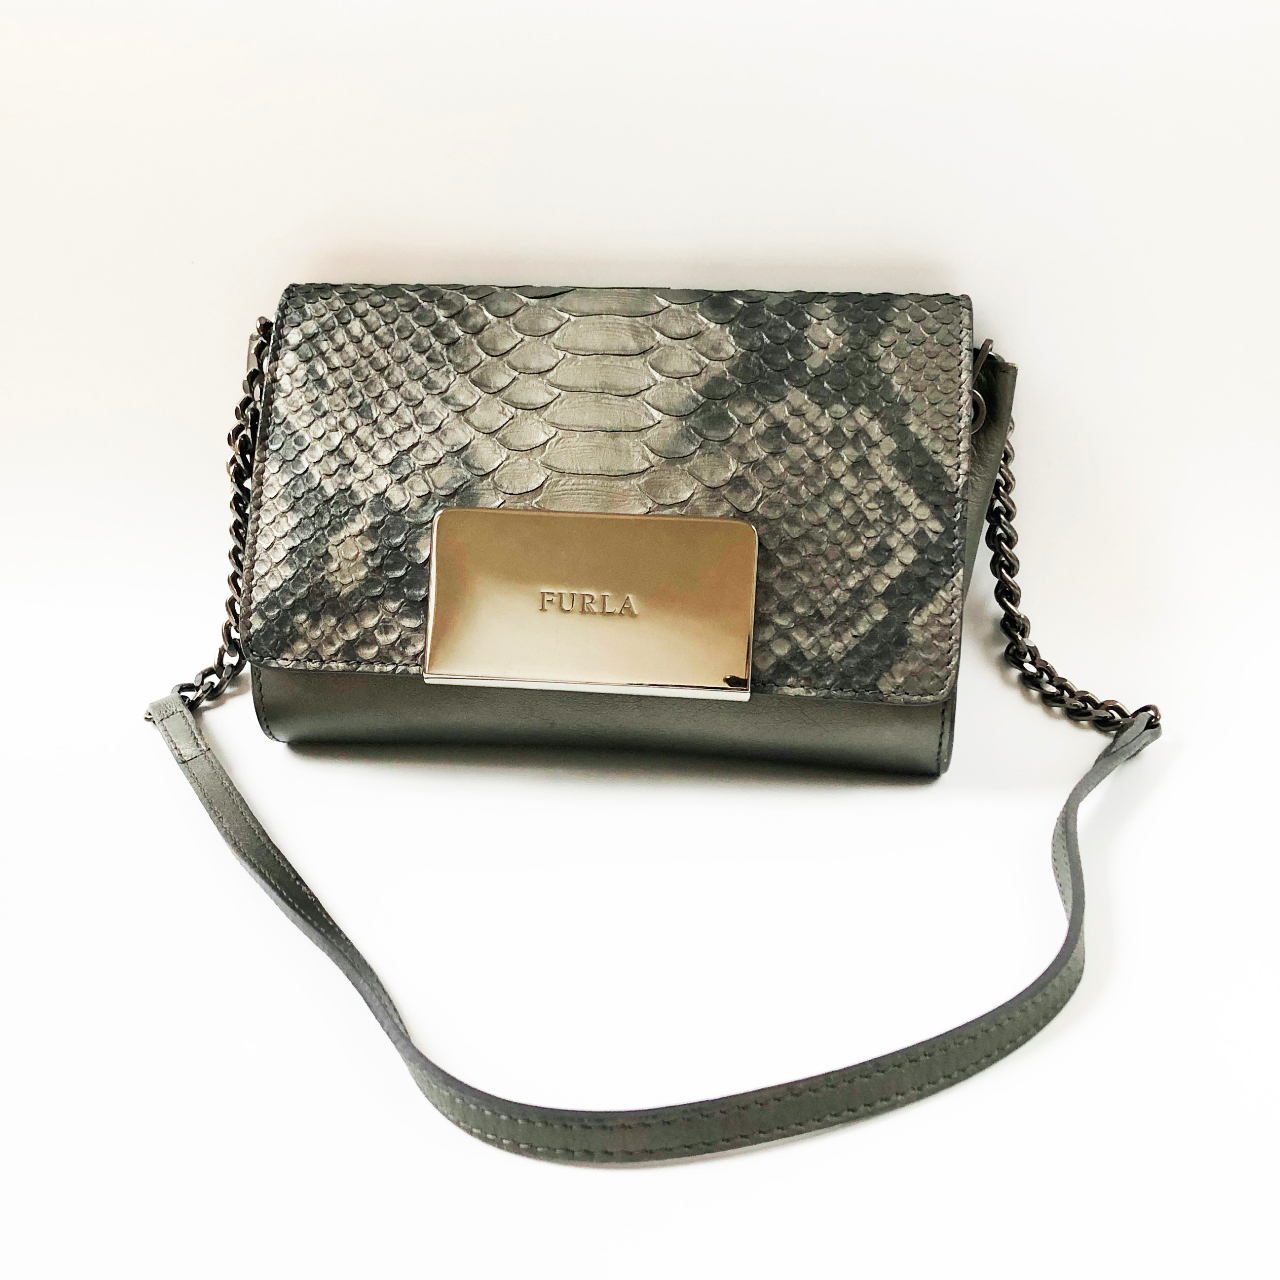 Product Image 1 - Small reptile leather purse bag,